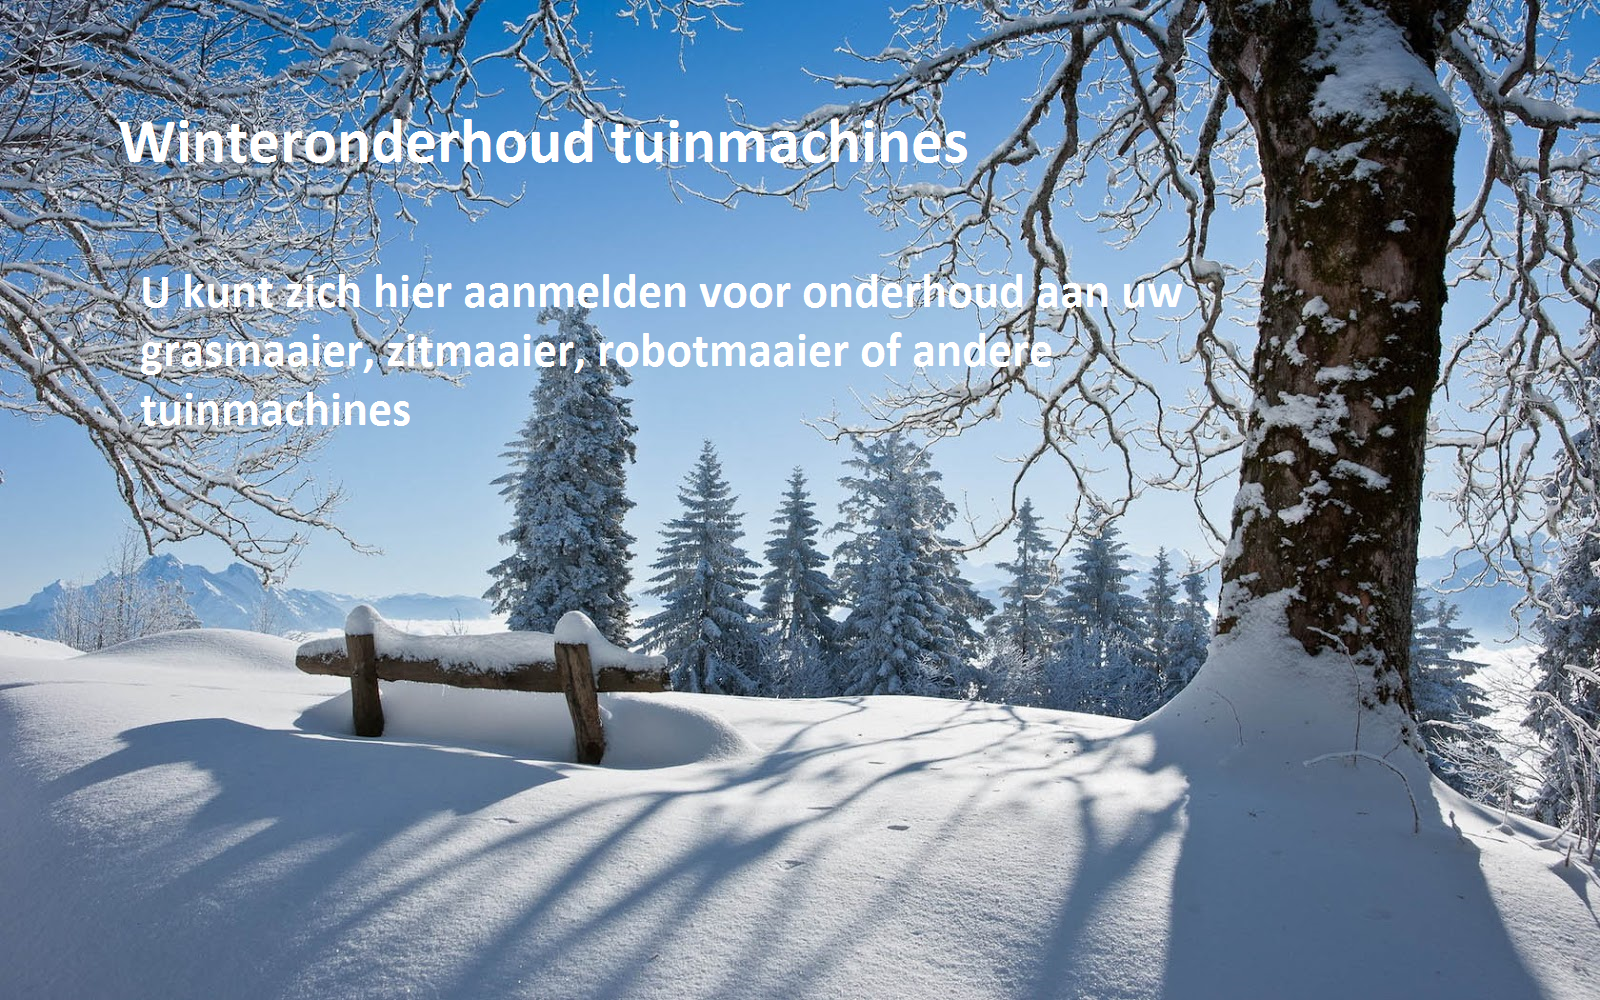 Winteronderhoud